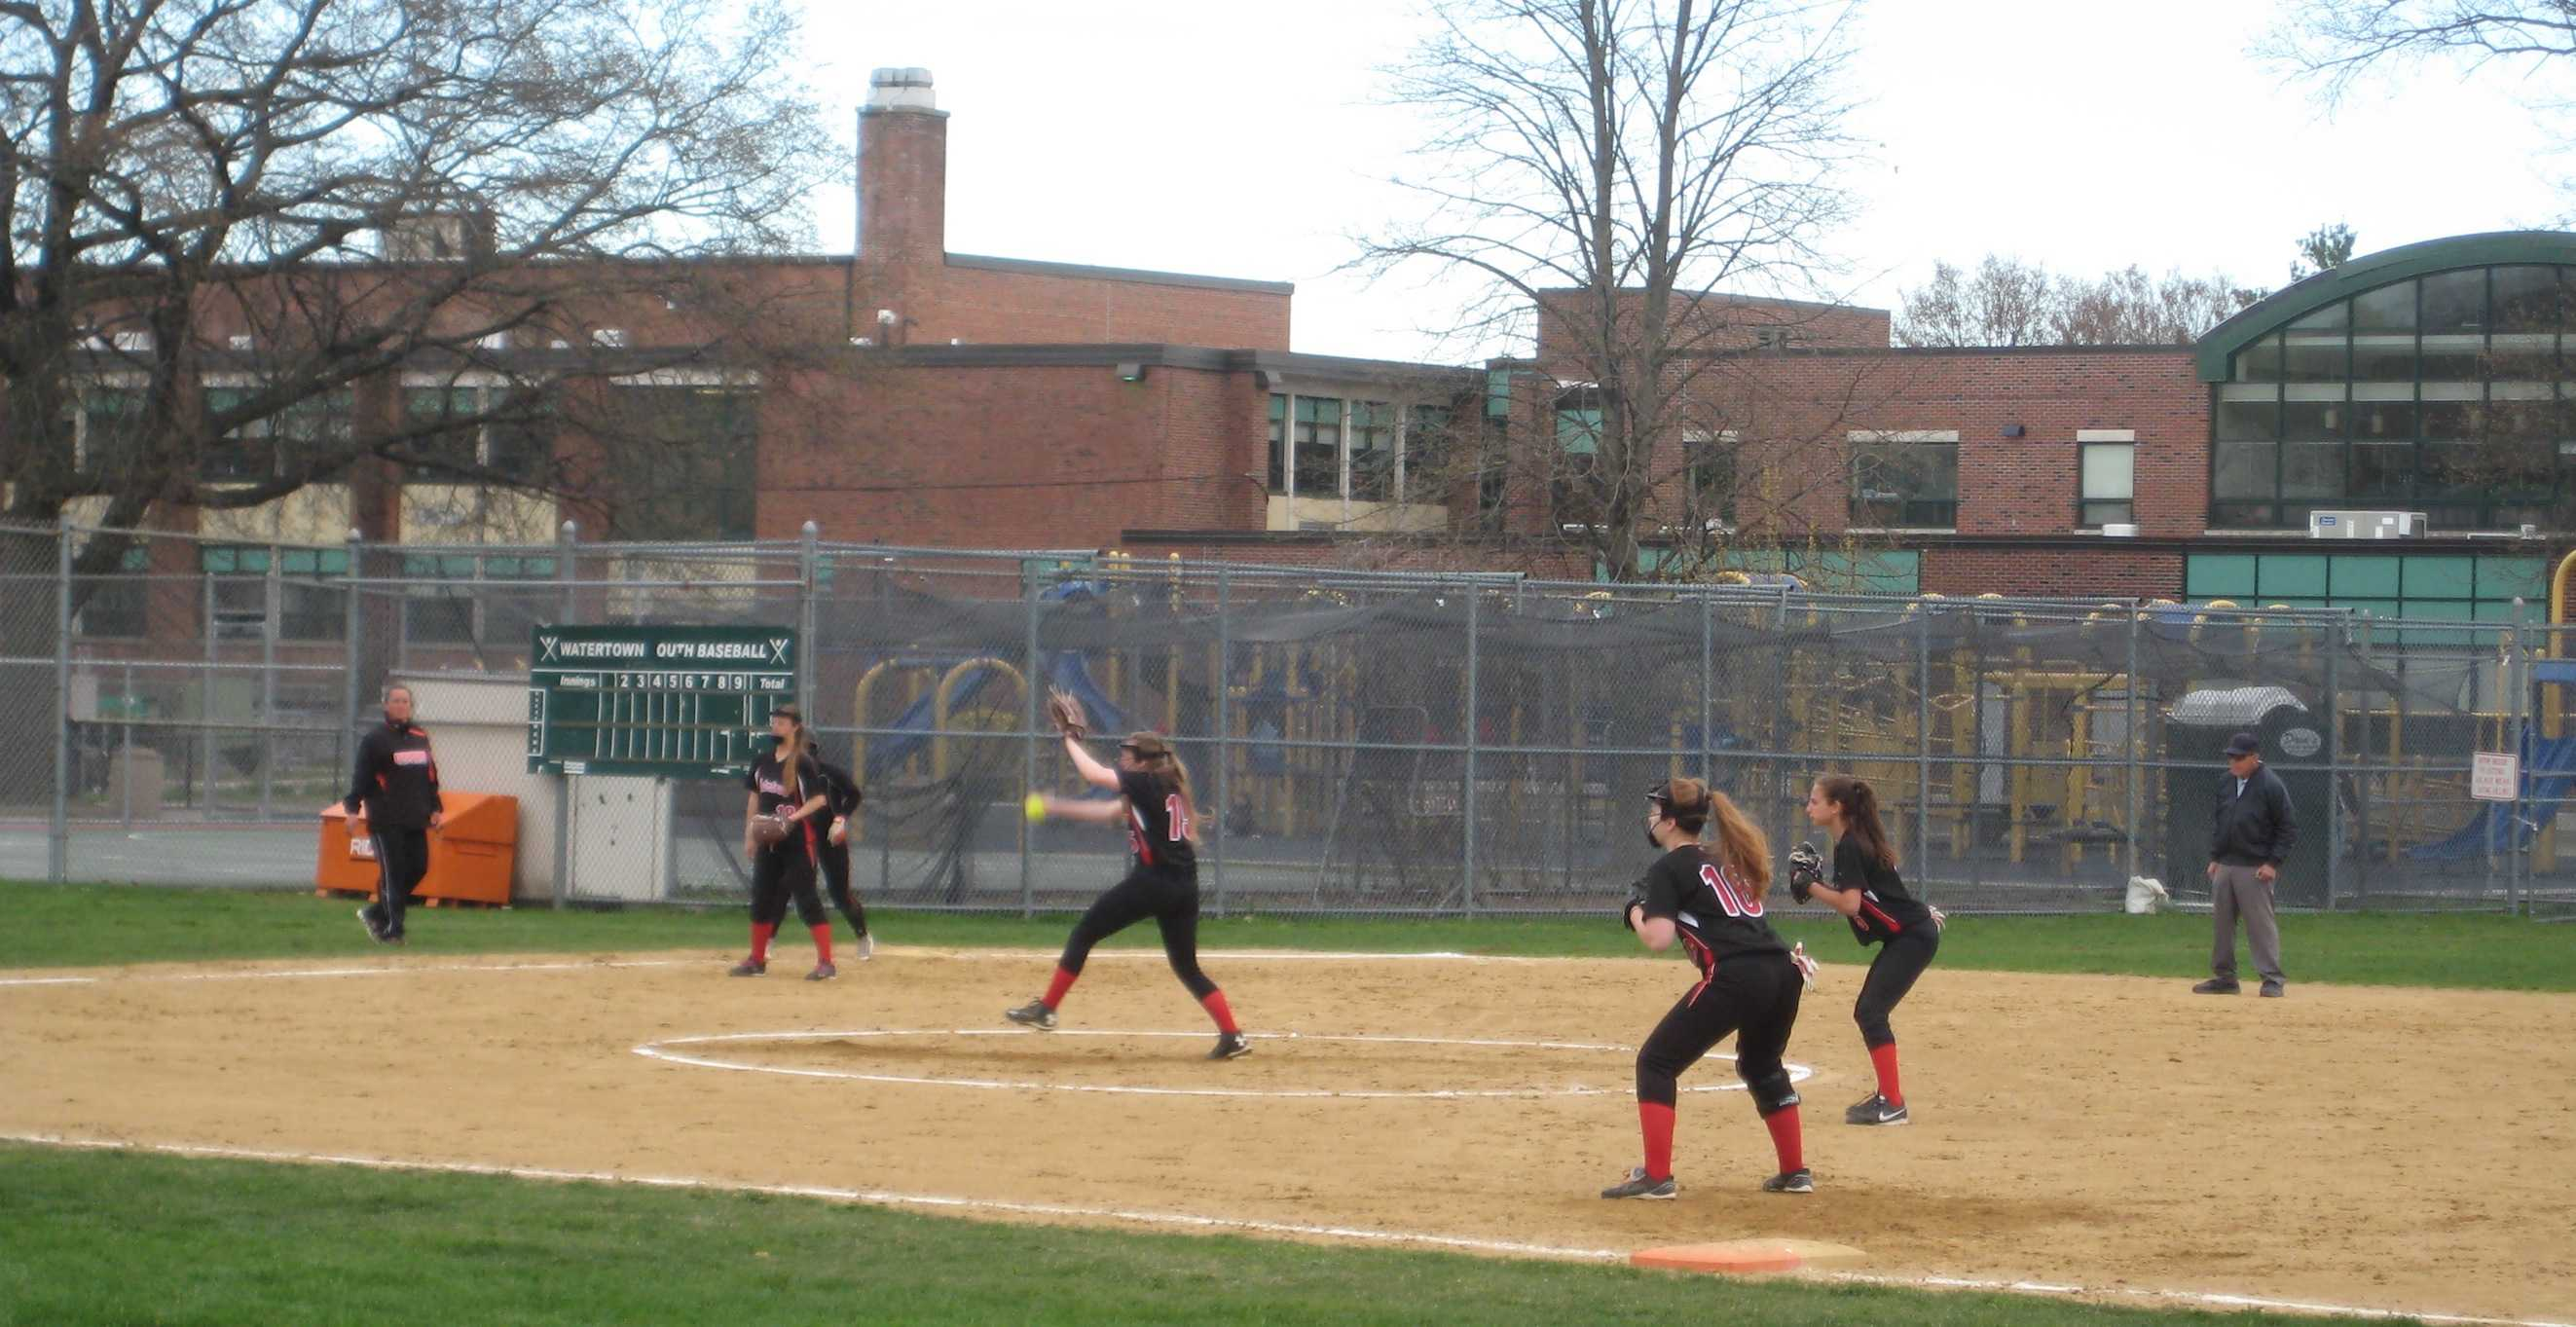 Freshman pitcher Destiny Santalucia winds up during a recent Watertown High School softball game, played on its home field at Hosmer  Elementary School.